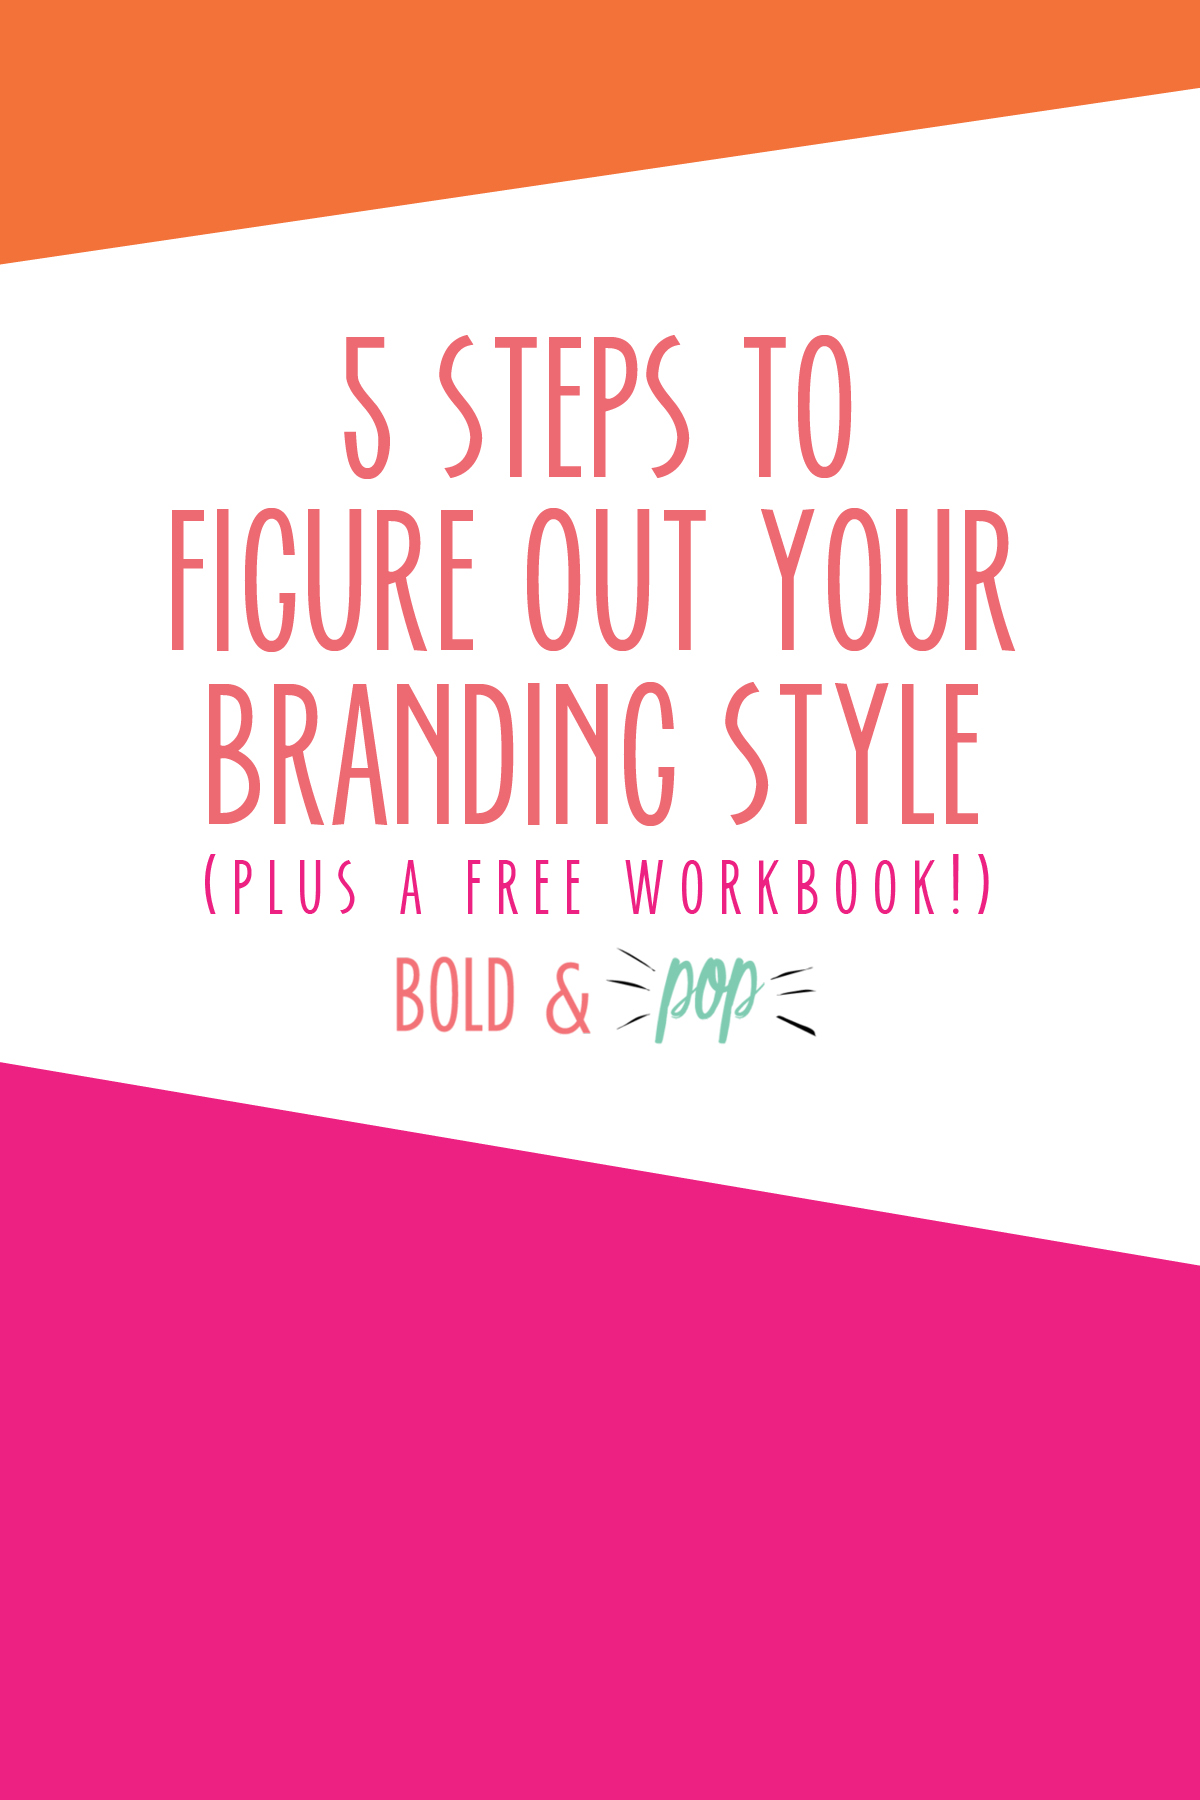 Bold & Pop :: 5 Steps to Figure Out Your Branding Style (Plus a FREE Workbook!)